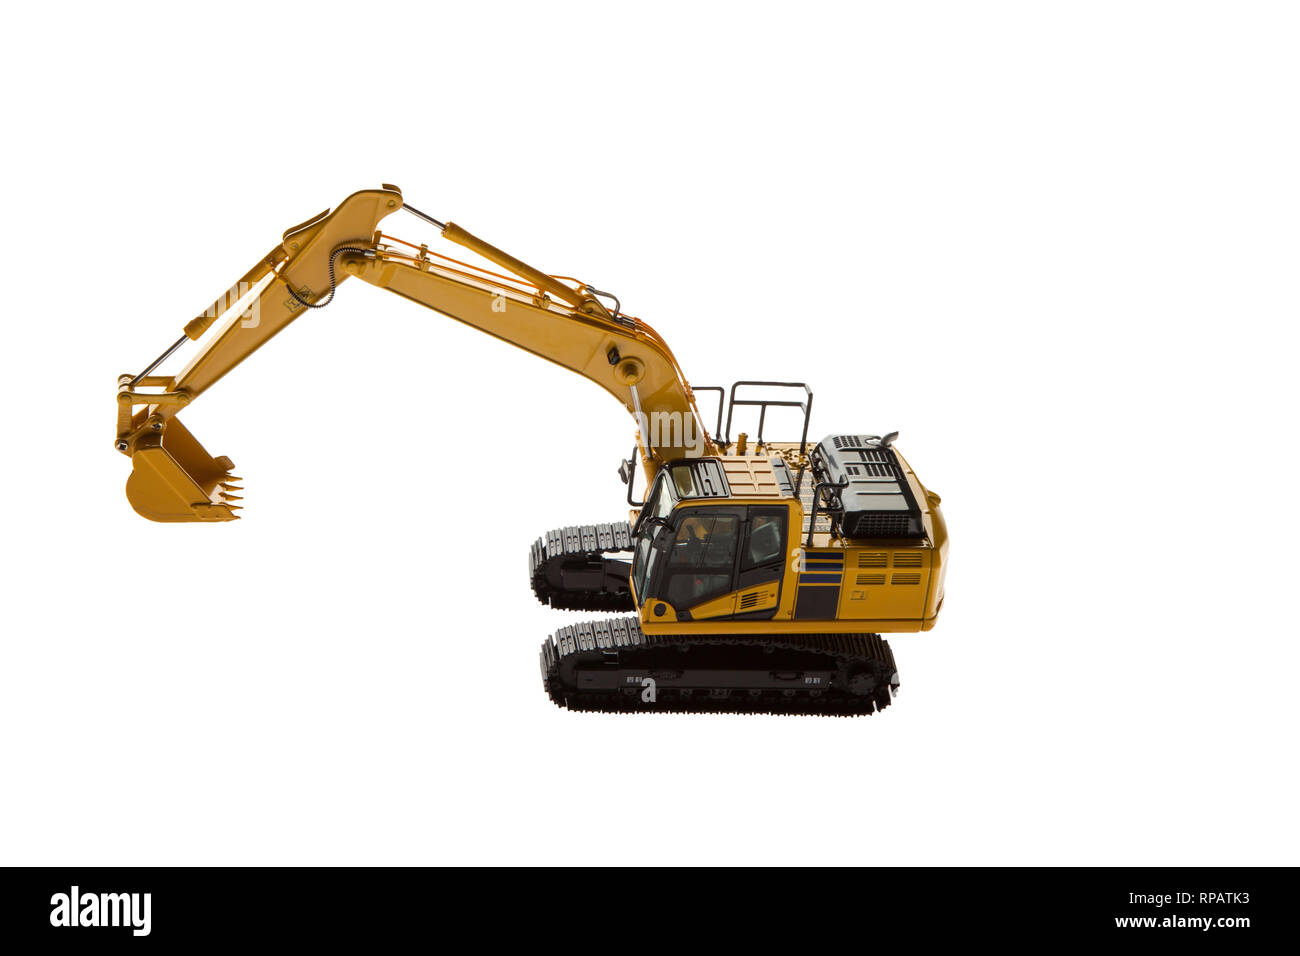 Excavator construction machinery aerial view - Stock Image